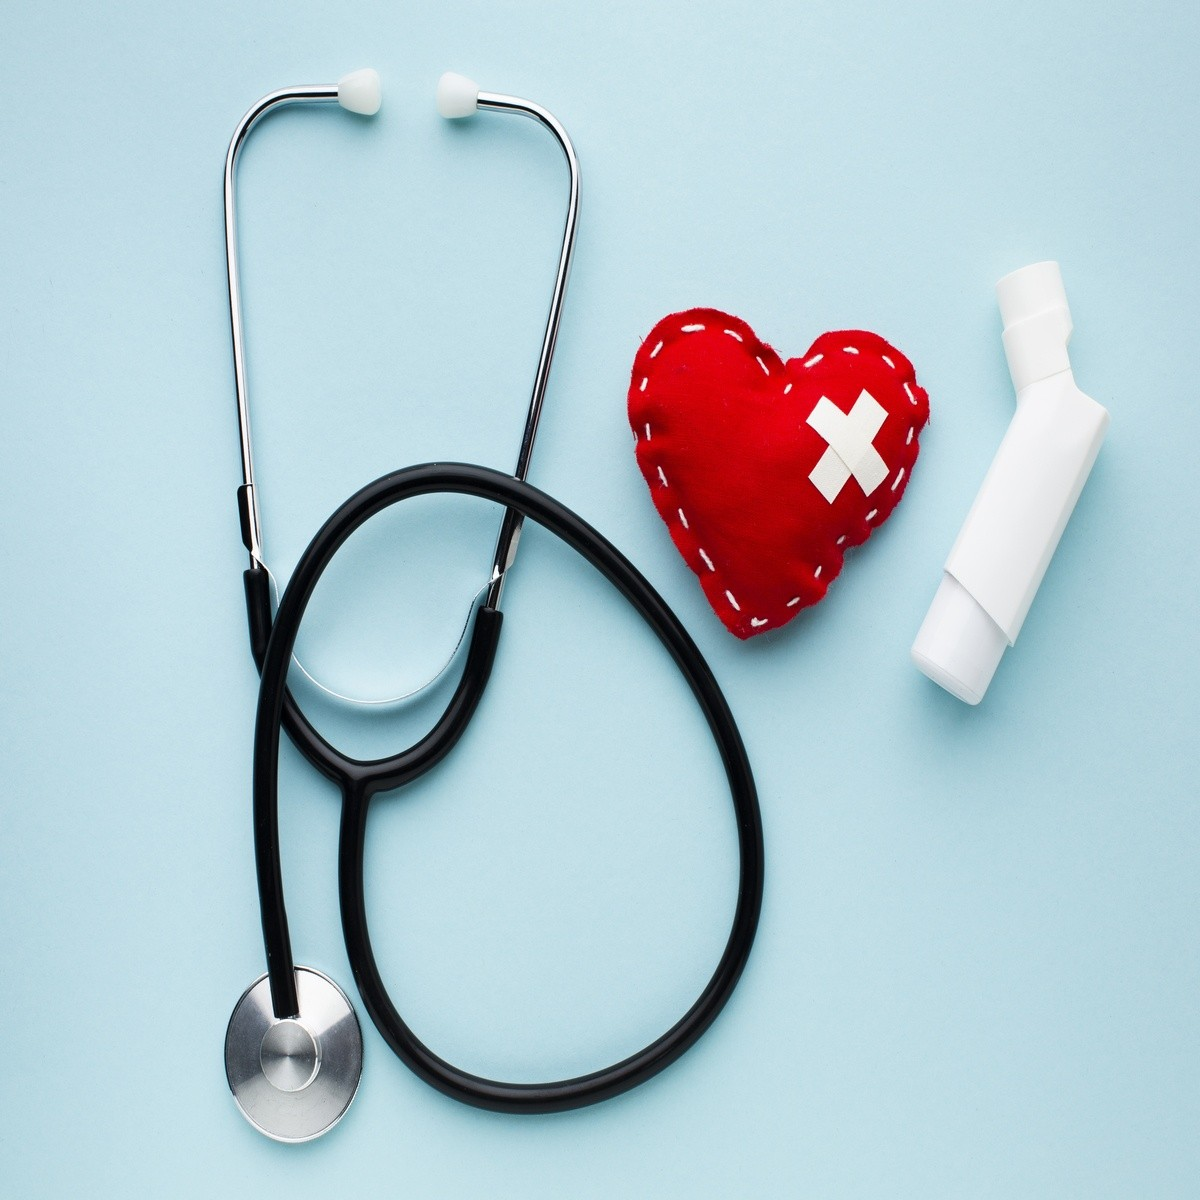 Health Care and Medical- state tech- software solutions